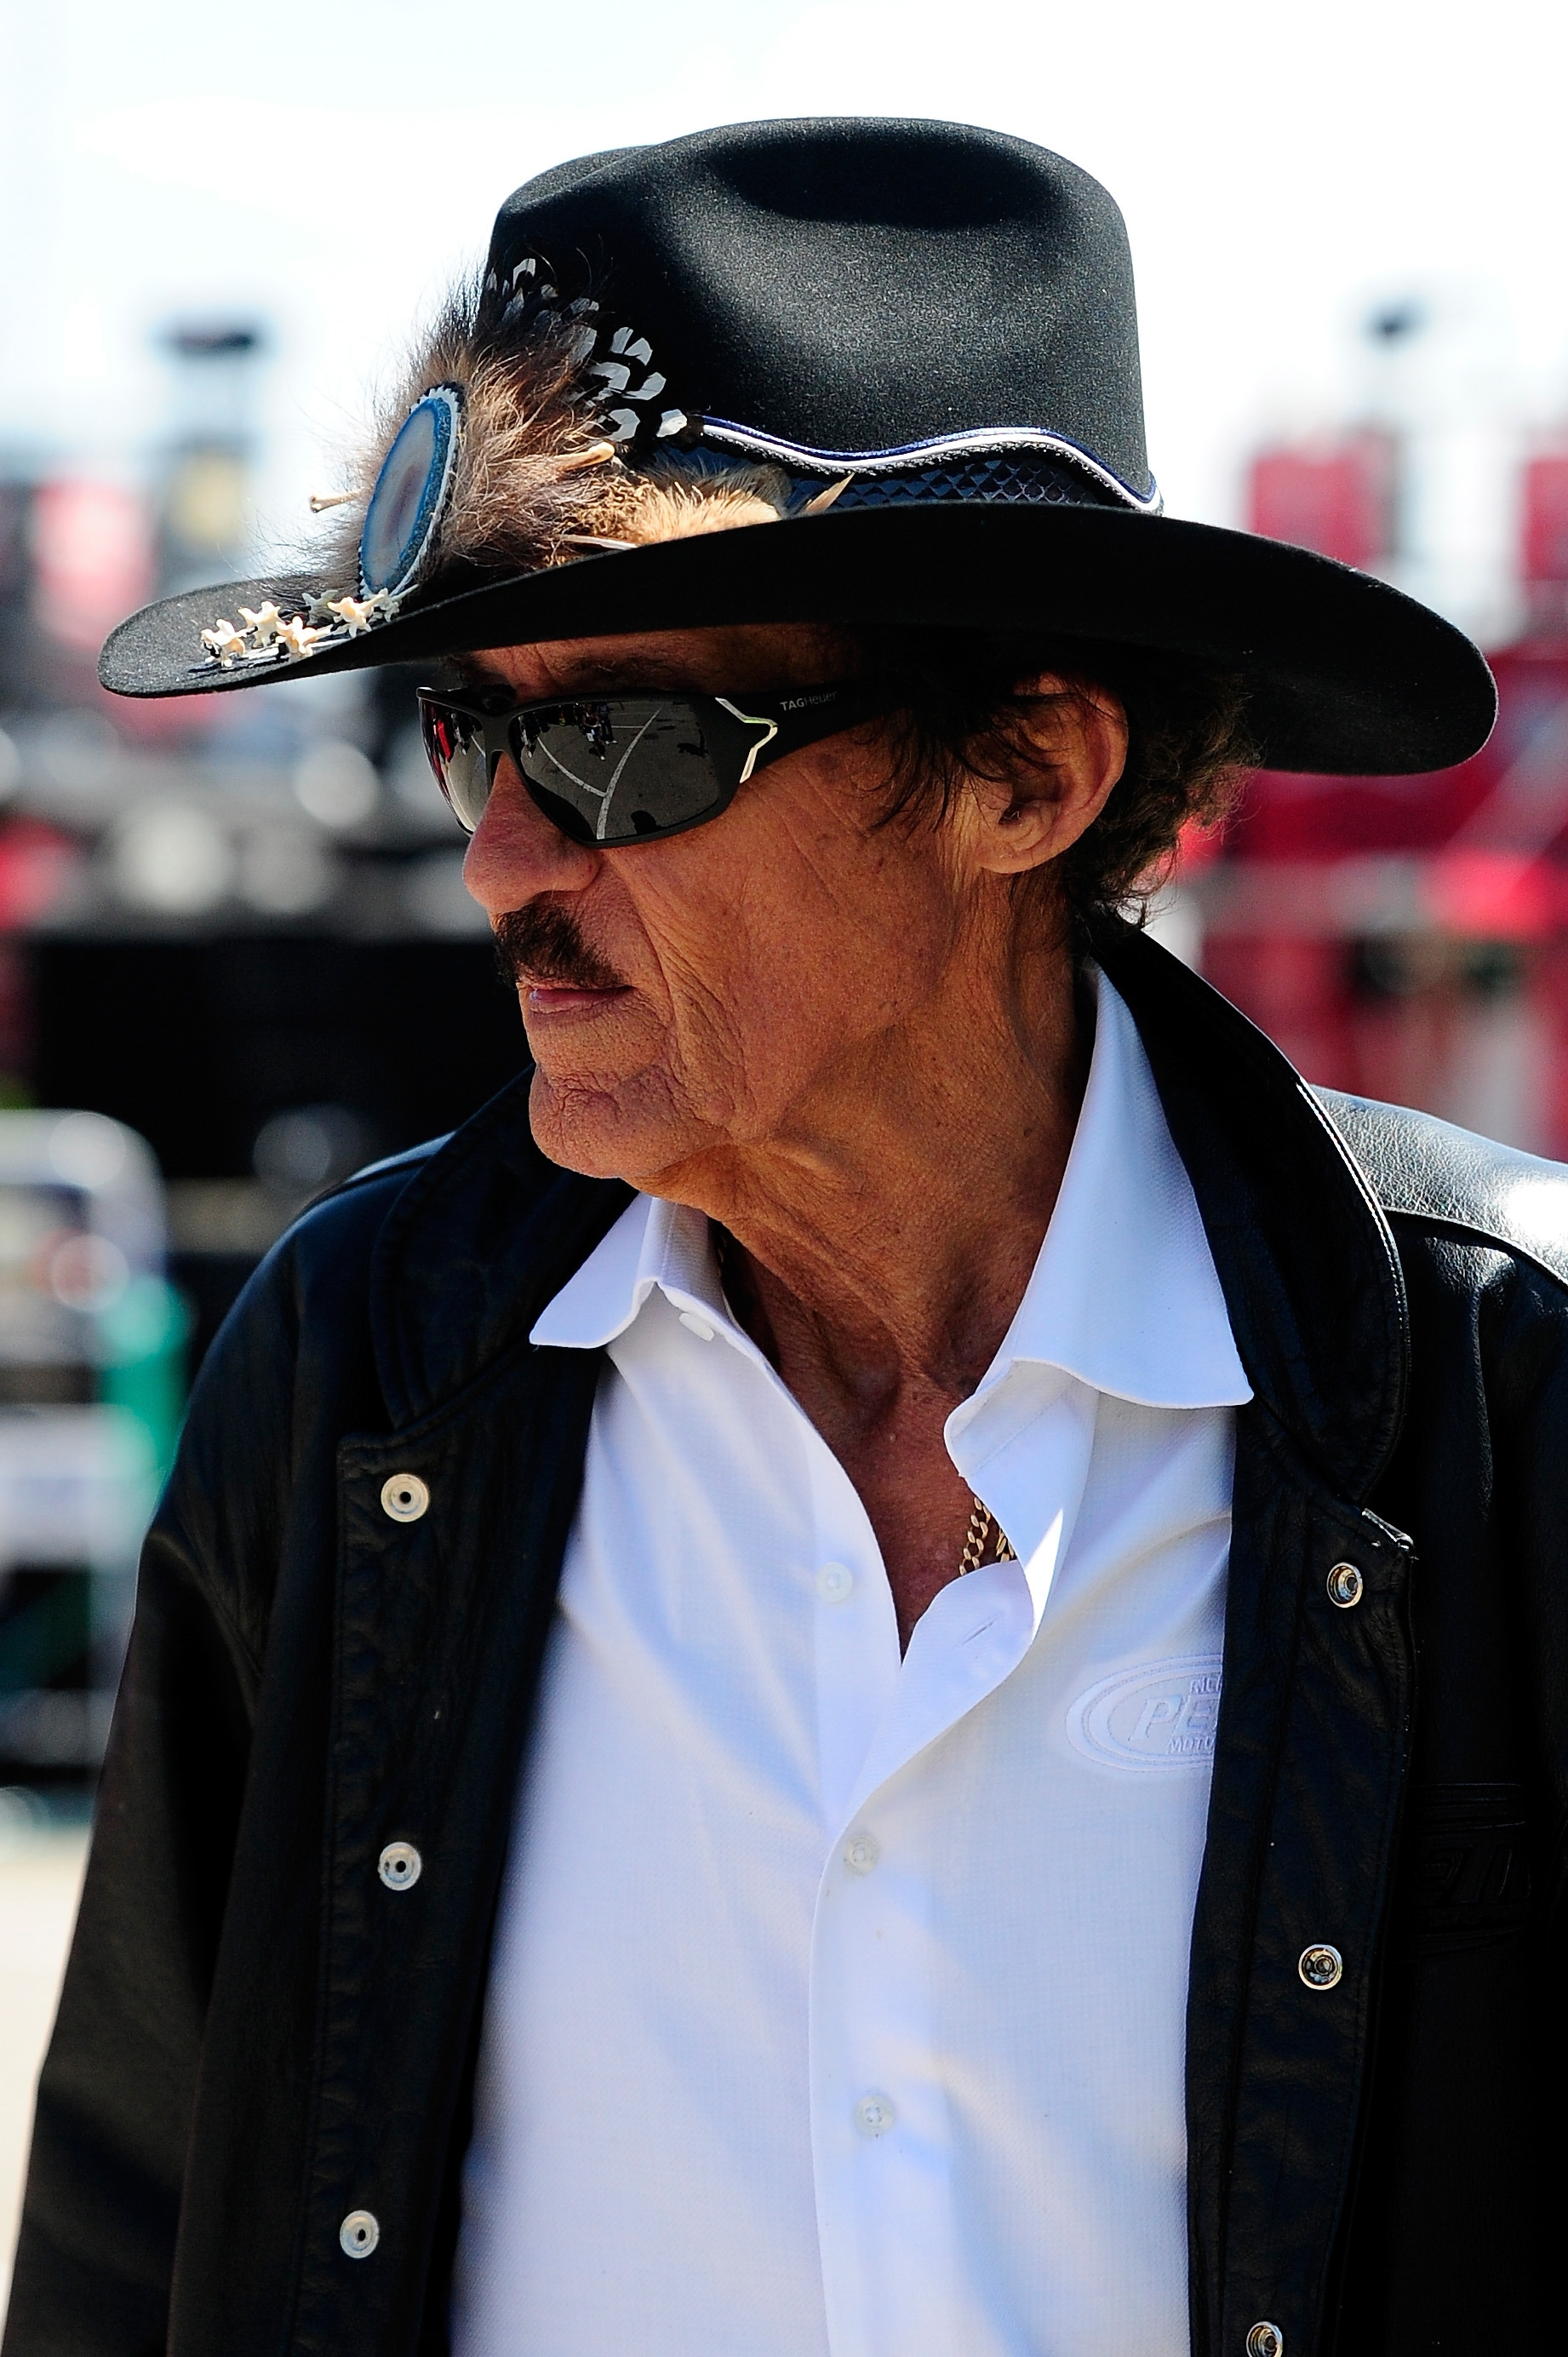 Still looking for wins: NASCAR hall of famer Richard Petty was in Brooklyn, Mich., Friday, for the NASCAR Sprint Cup Series Pure Michigan 400 at Michigan International Speedway.